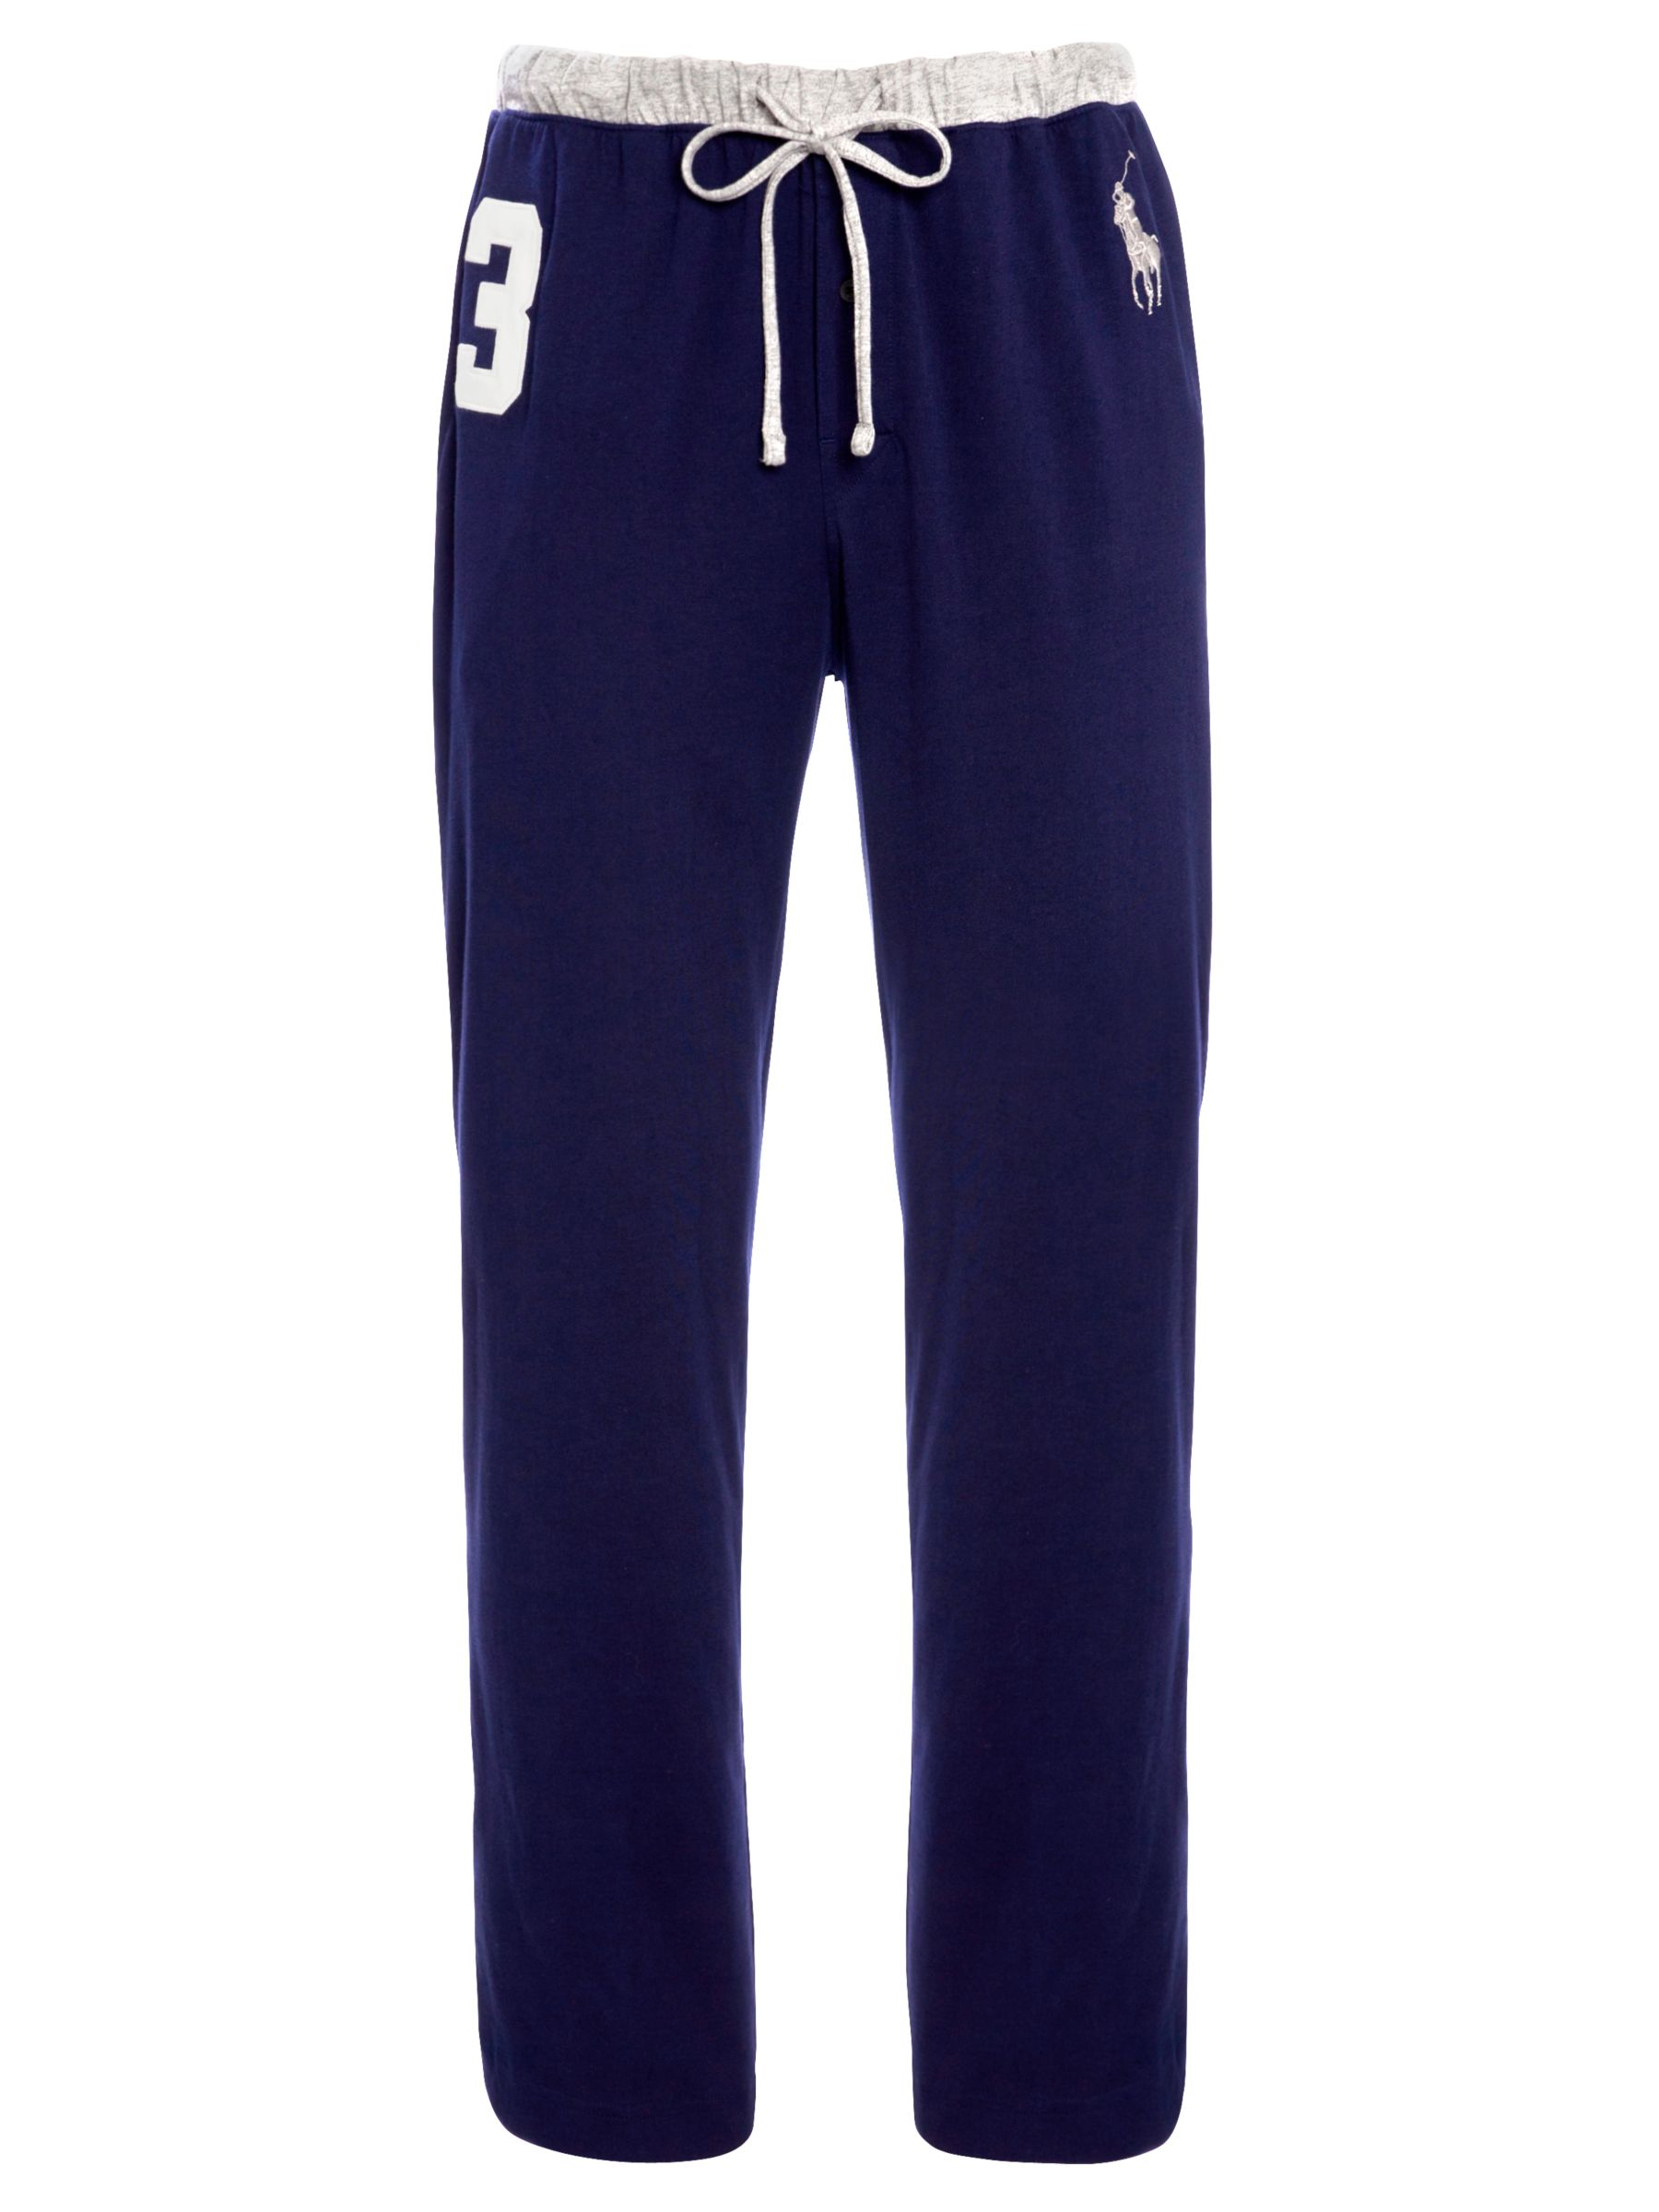 Polo Ralph Lauren No.3 Jersey Lounge Pants, Navy